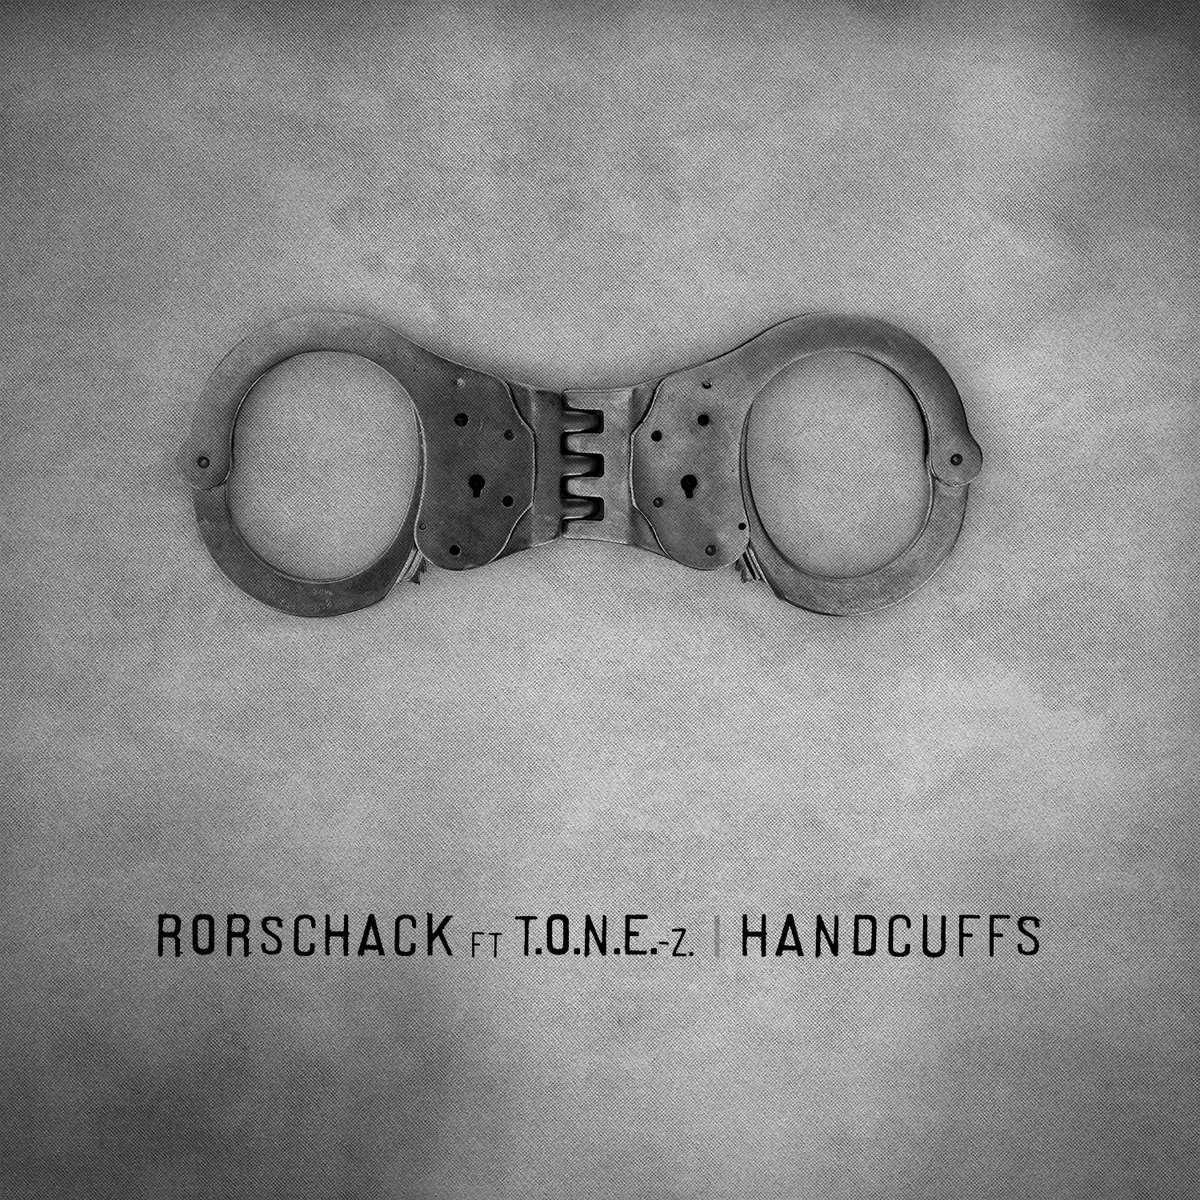 Rorschack feat. T.O.N.E.-z - God MC @ 'Handcuffs' album (electronic, dubstep)